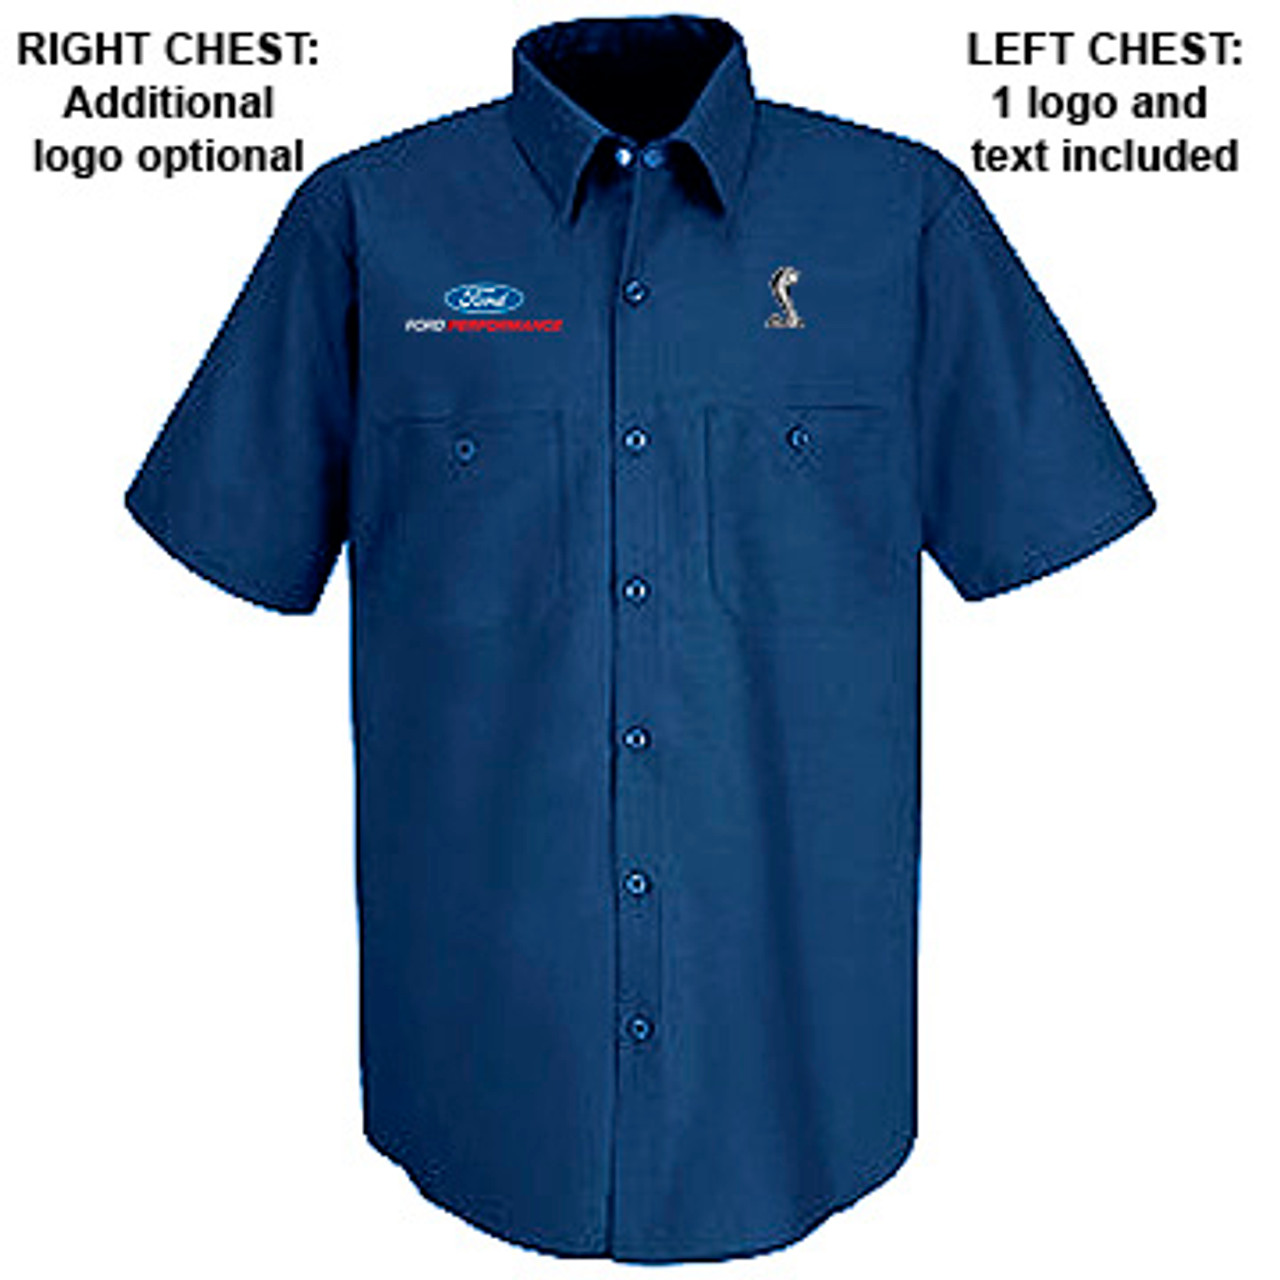 7d8b3c0ab Customizable Garage Work Shirt - SVT Store